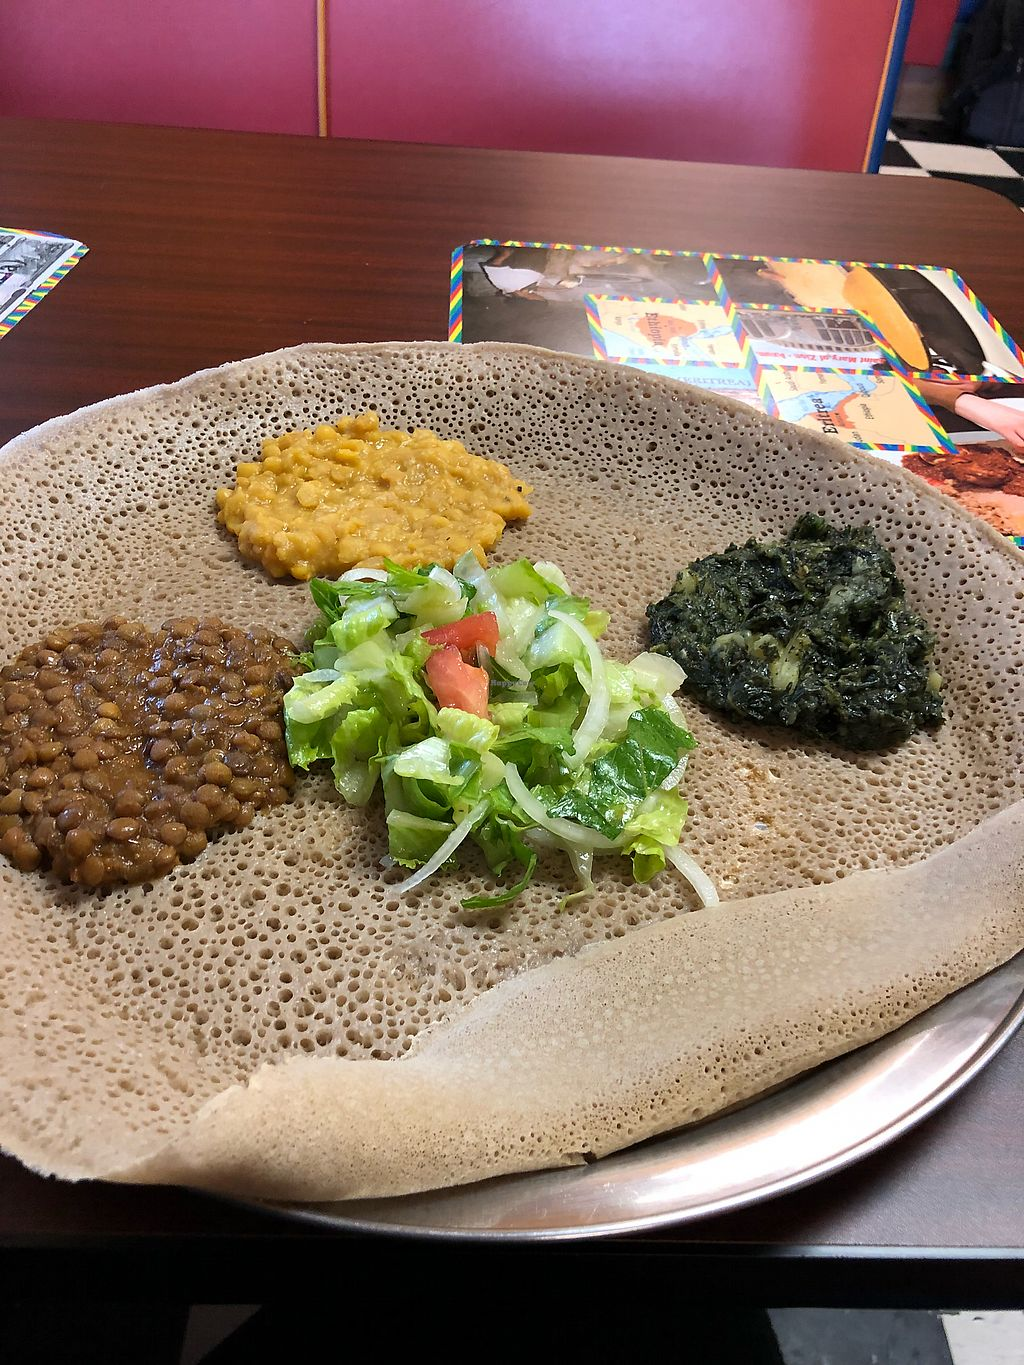 """Photo of Kibrom's Restaurant  by <a href=""""/members/profile/LinnDaugherty"""">LinnDaugherty</a> <br/>#19, yellow lentil, and kale potato - comes with the salad and the bread which you eat the sides with  <br/> April 16, 2018  - <a href='/contact/abuse/image/54717/386569'>Report</a>"""